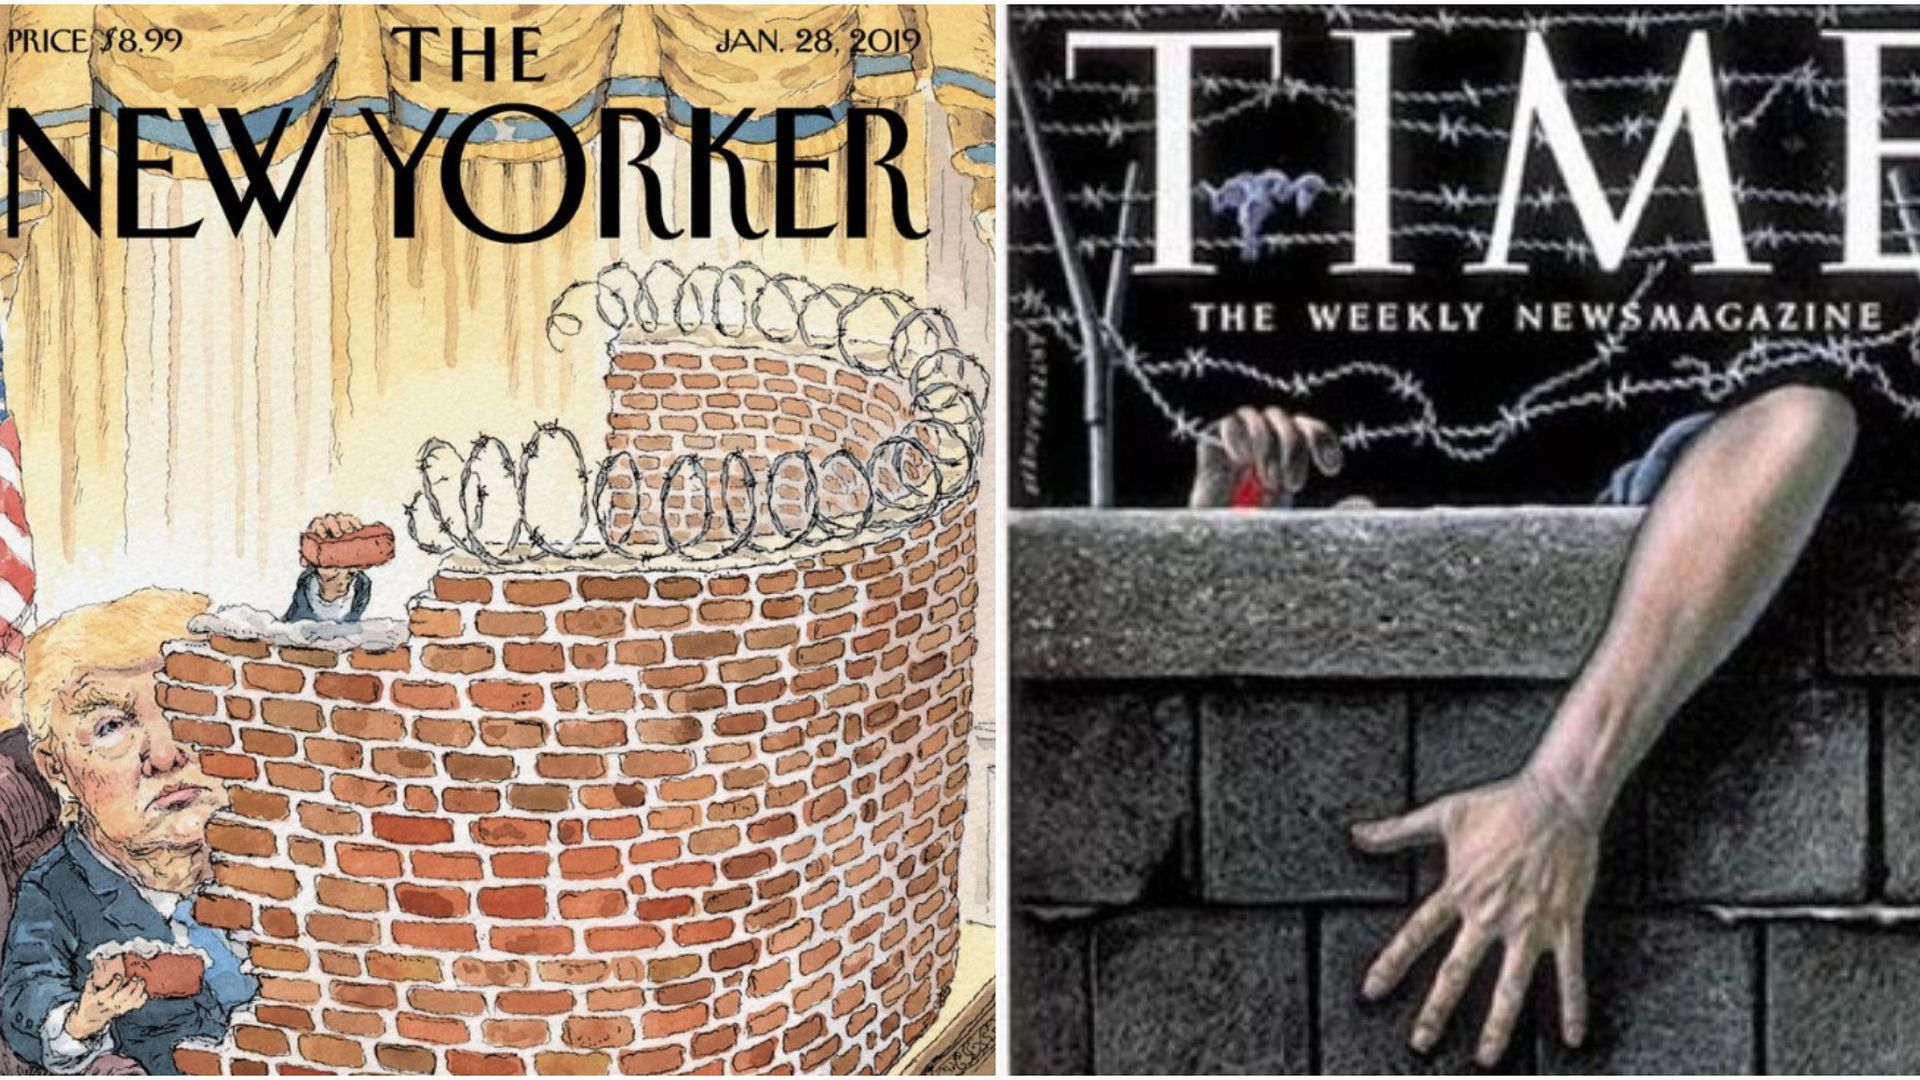 Two illustrated magazine covers, one of Trump building a brick wall at his desk and the other of the Berlin Wall with a hand reaching over the edge of it